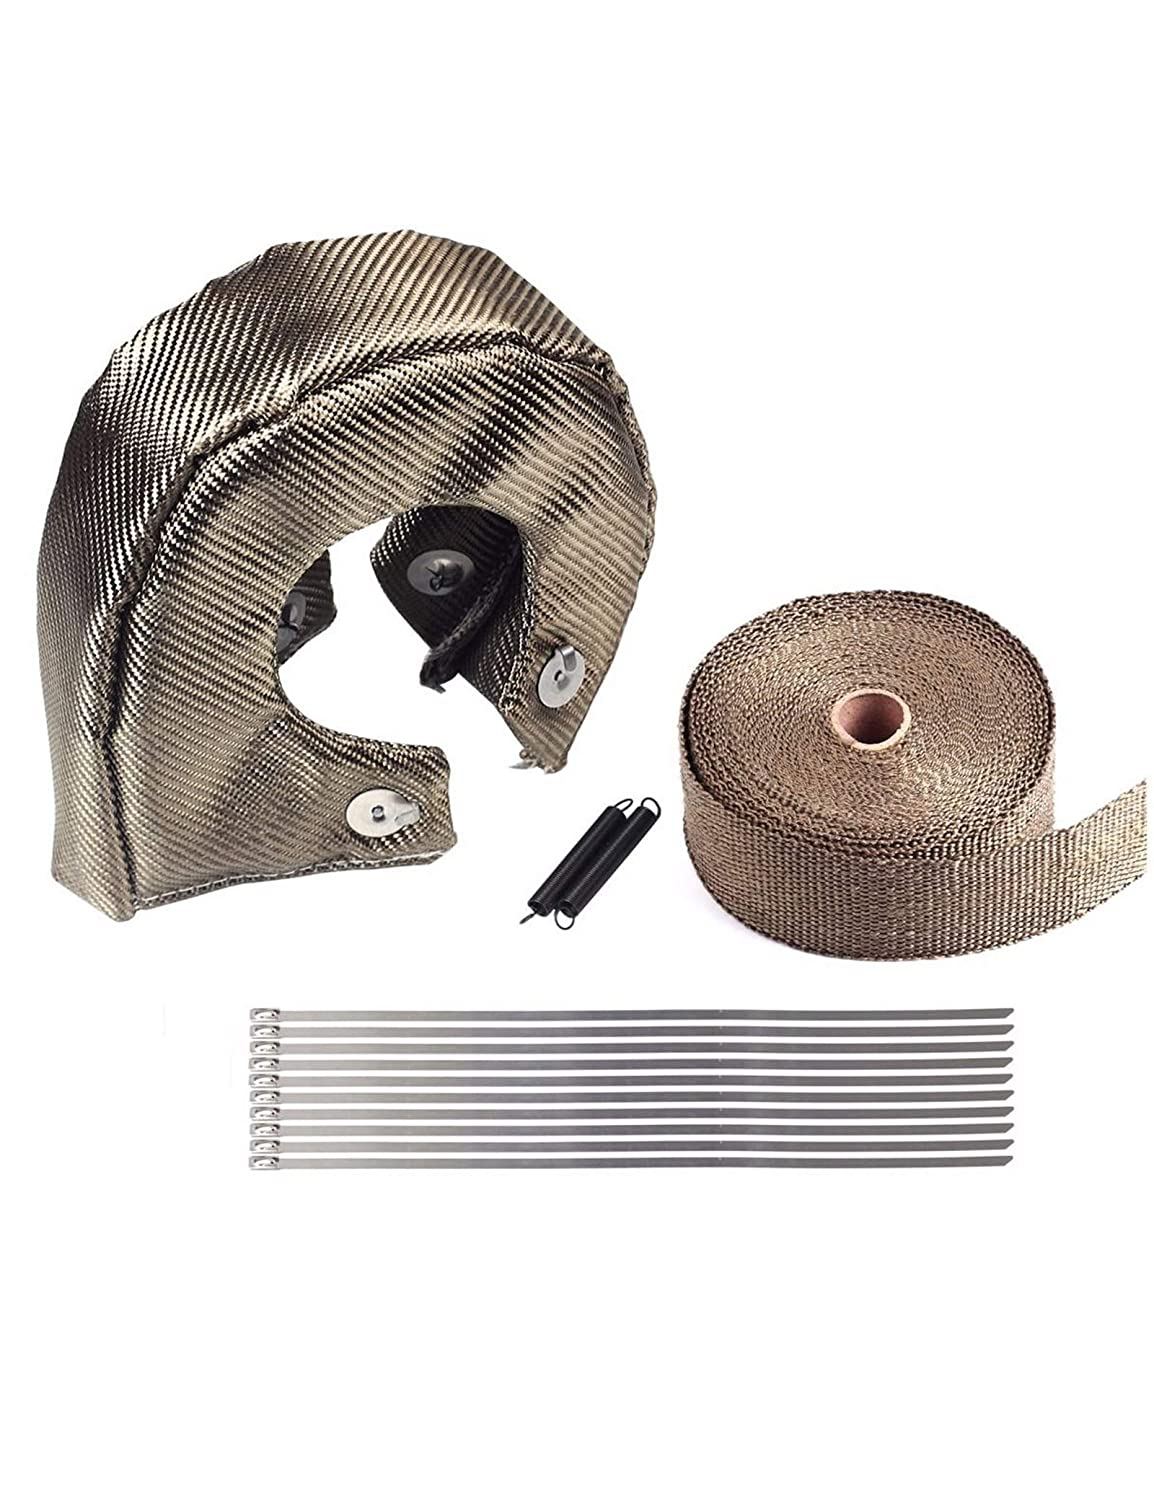 BLACKHORSE-RACING Titanium Turbo Blanket T4 for Turbocharger Thermal Heat Shield Cover Wrap with Fastener Springs 2 50 Wrap Tape Exhaust Header Manifold Heat Pipe